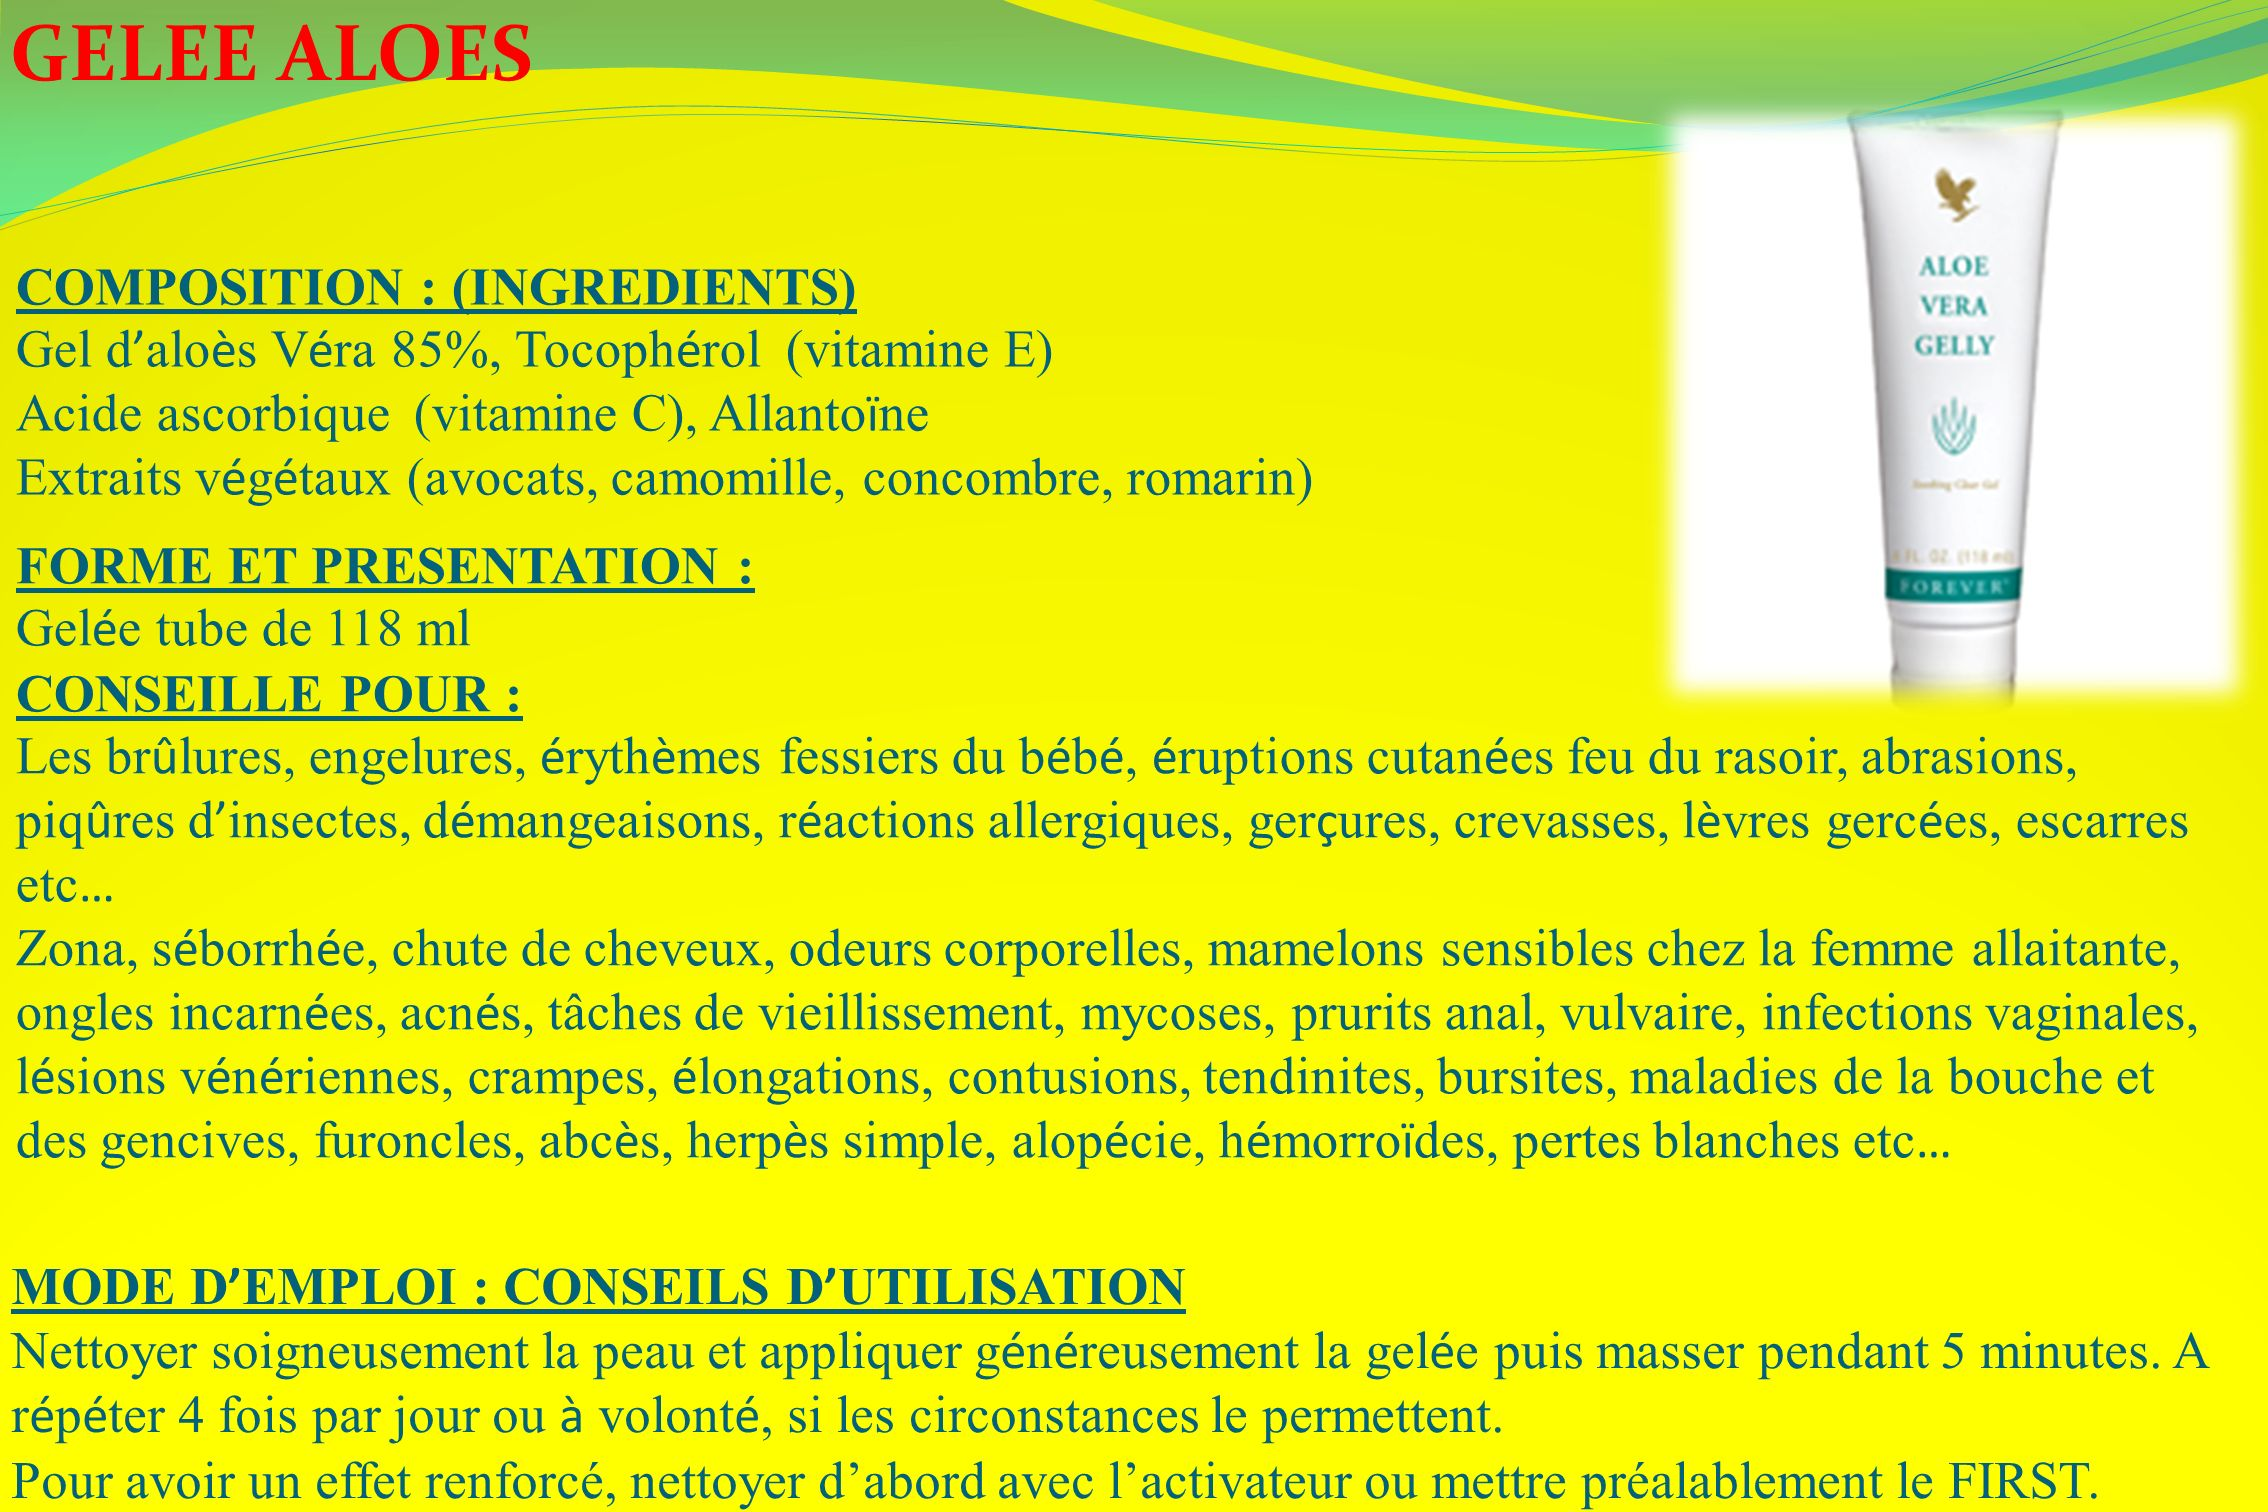 GELEE ALOES COMPOSITION : (INGREDIENTS)